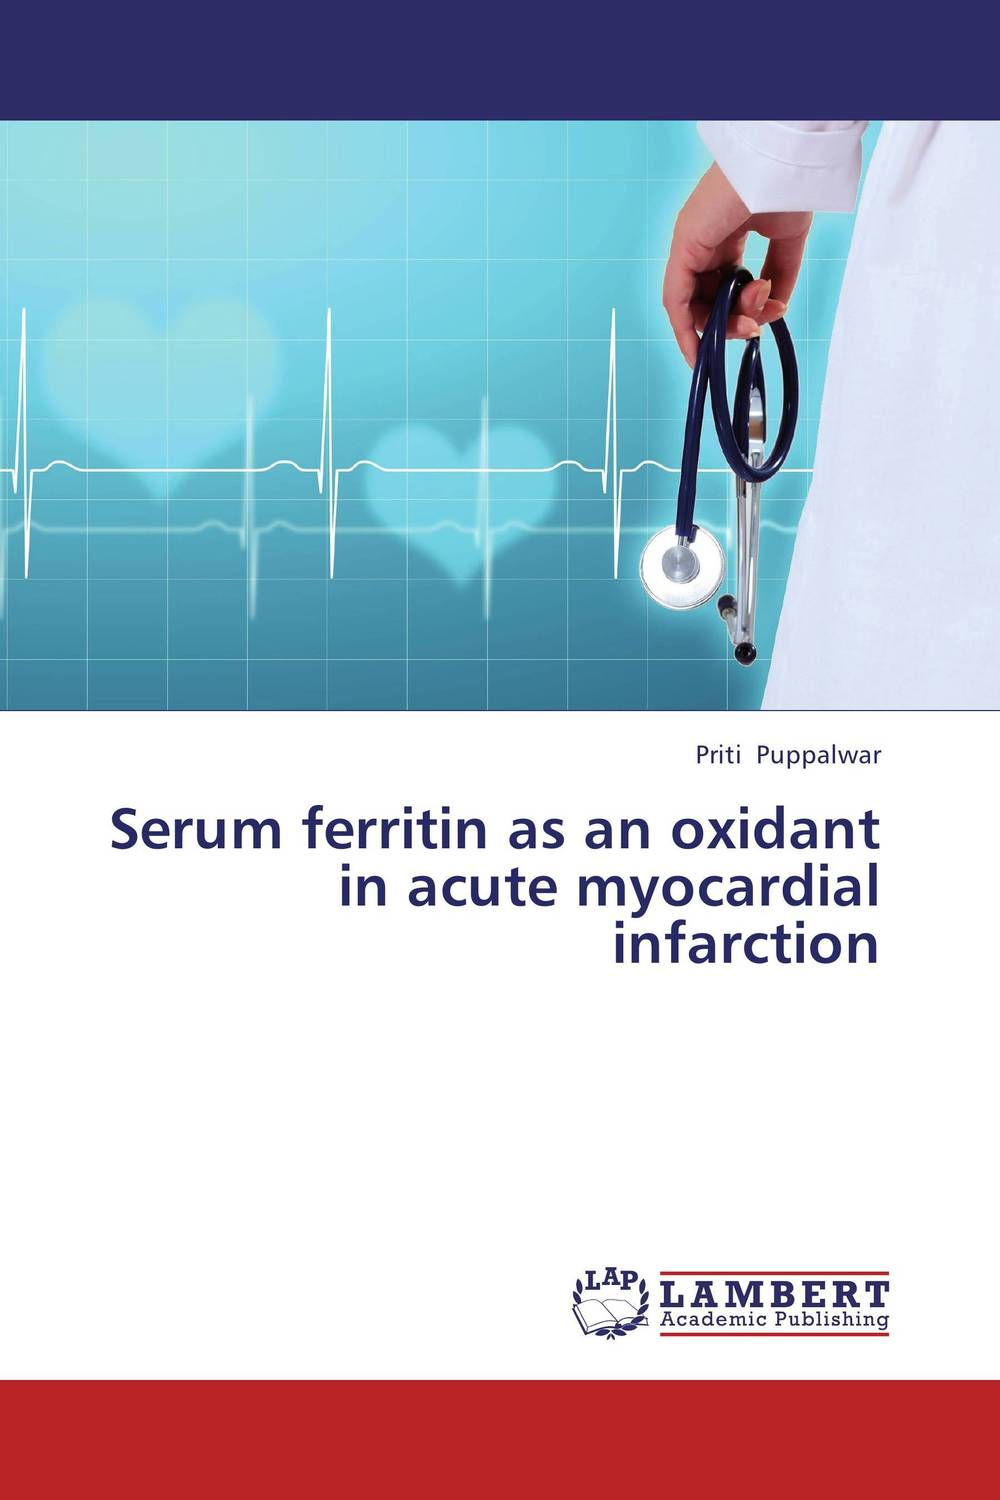 Serum ferritin as an oxidant in acute myocardial infarction metabolic syndrome in patients with acute myocardial infarction